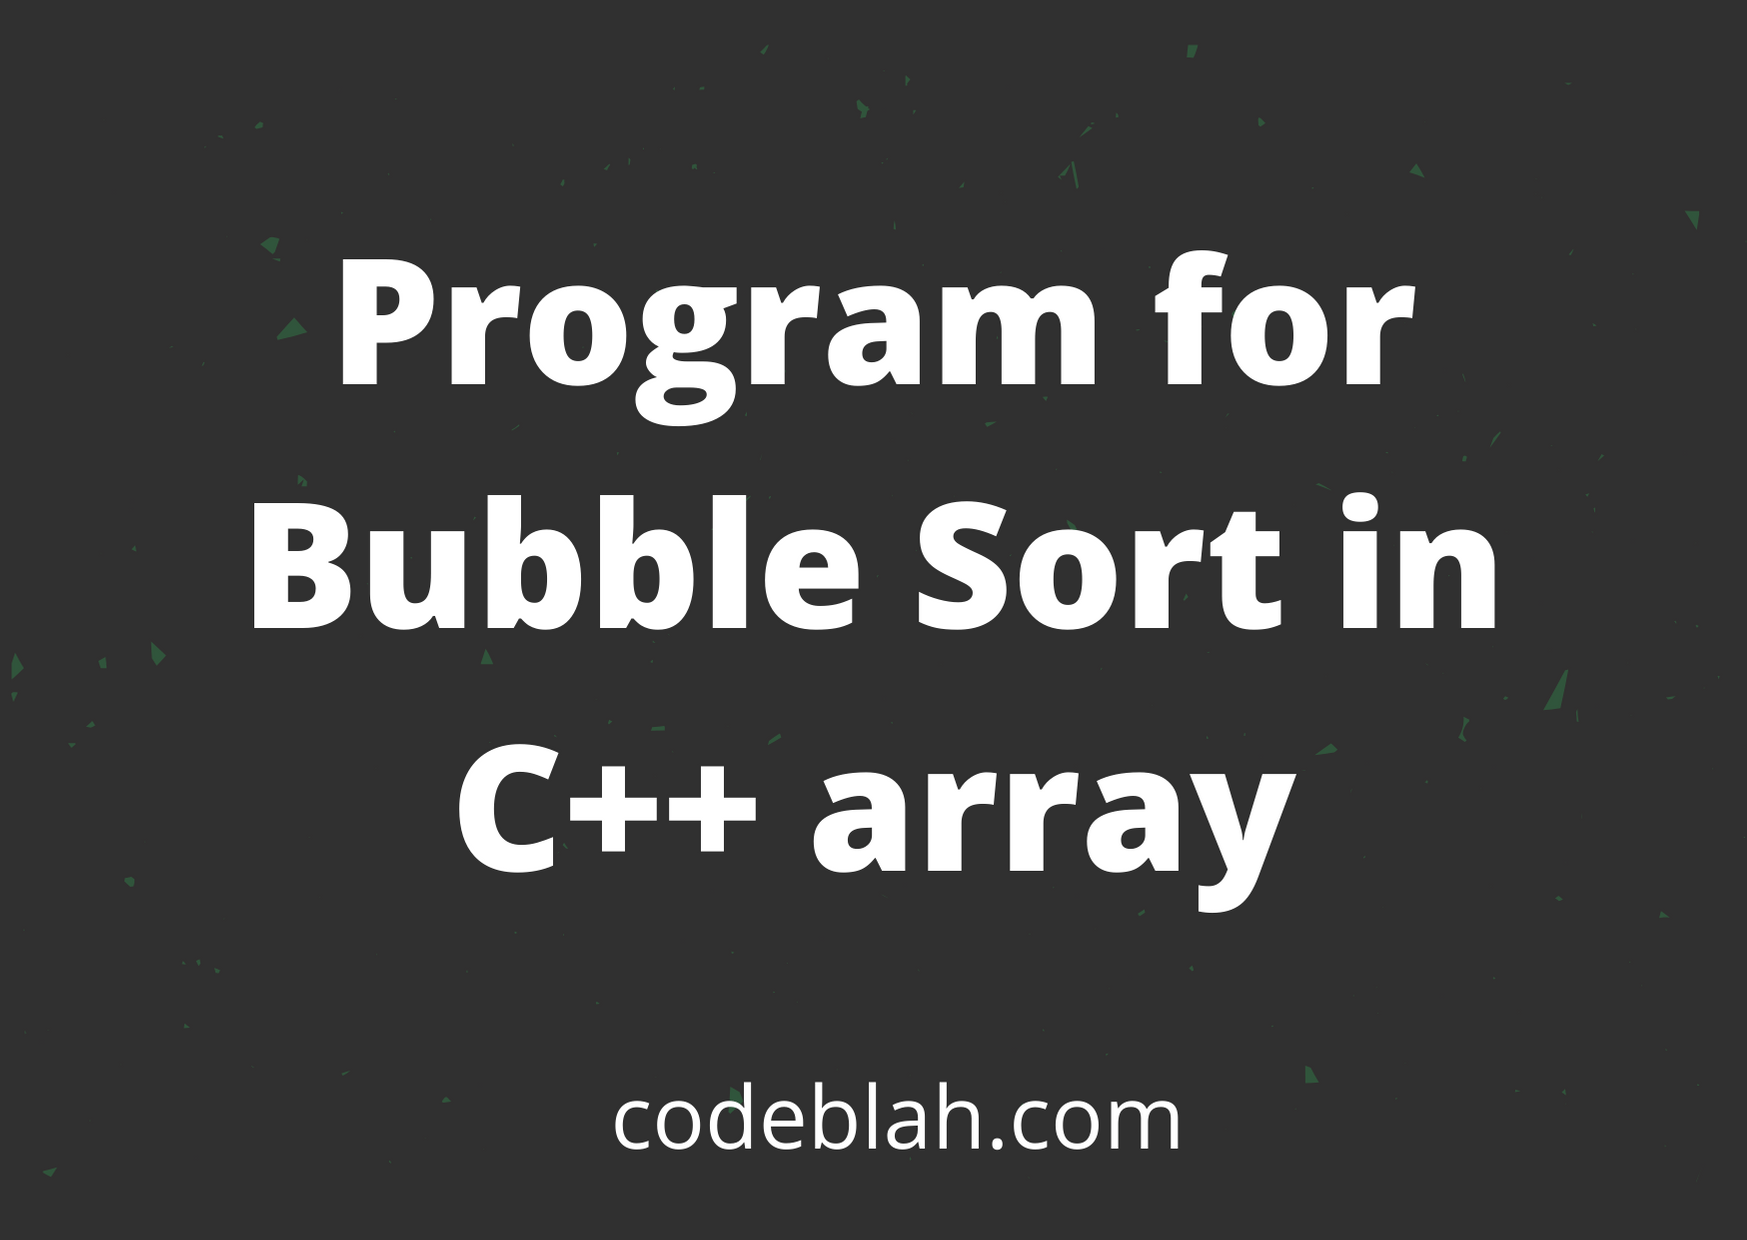 Program for Bubble Sort in C++ array